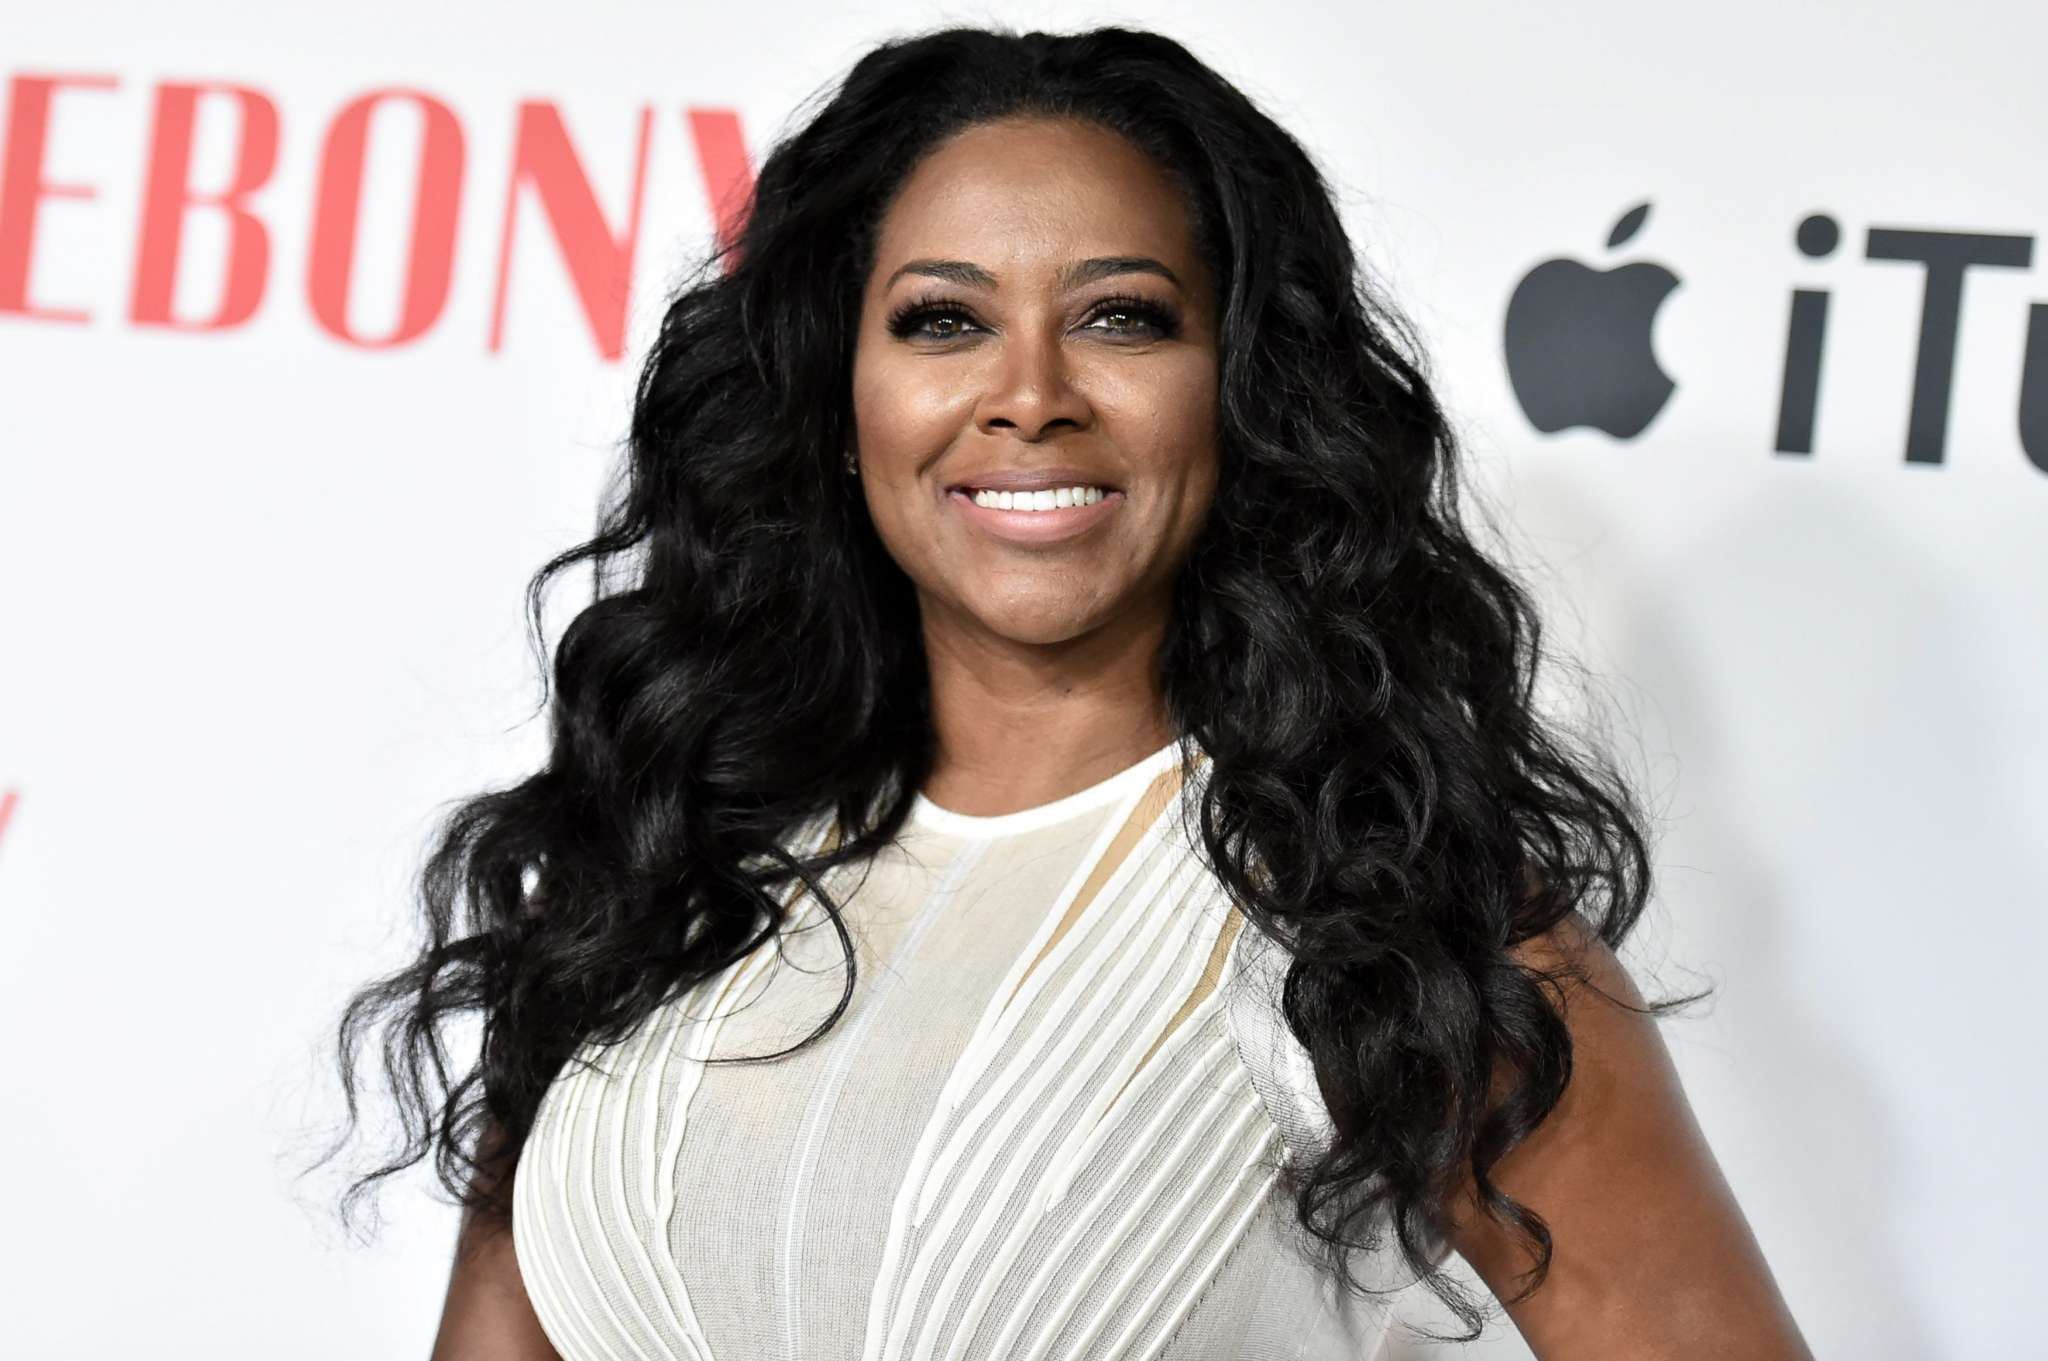 Kenya Moore Looks Amazing In This Nude Jaw-Dropping Dress - See The Photo